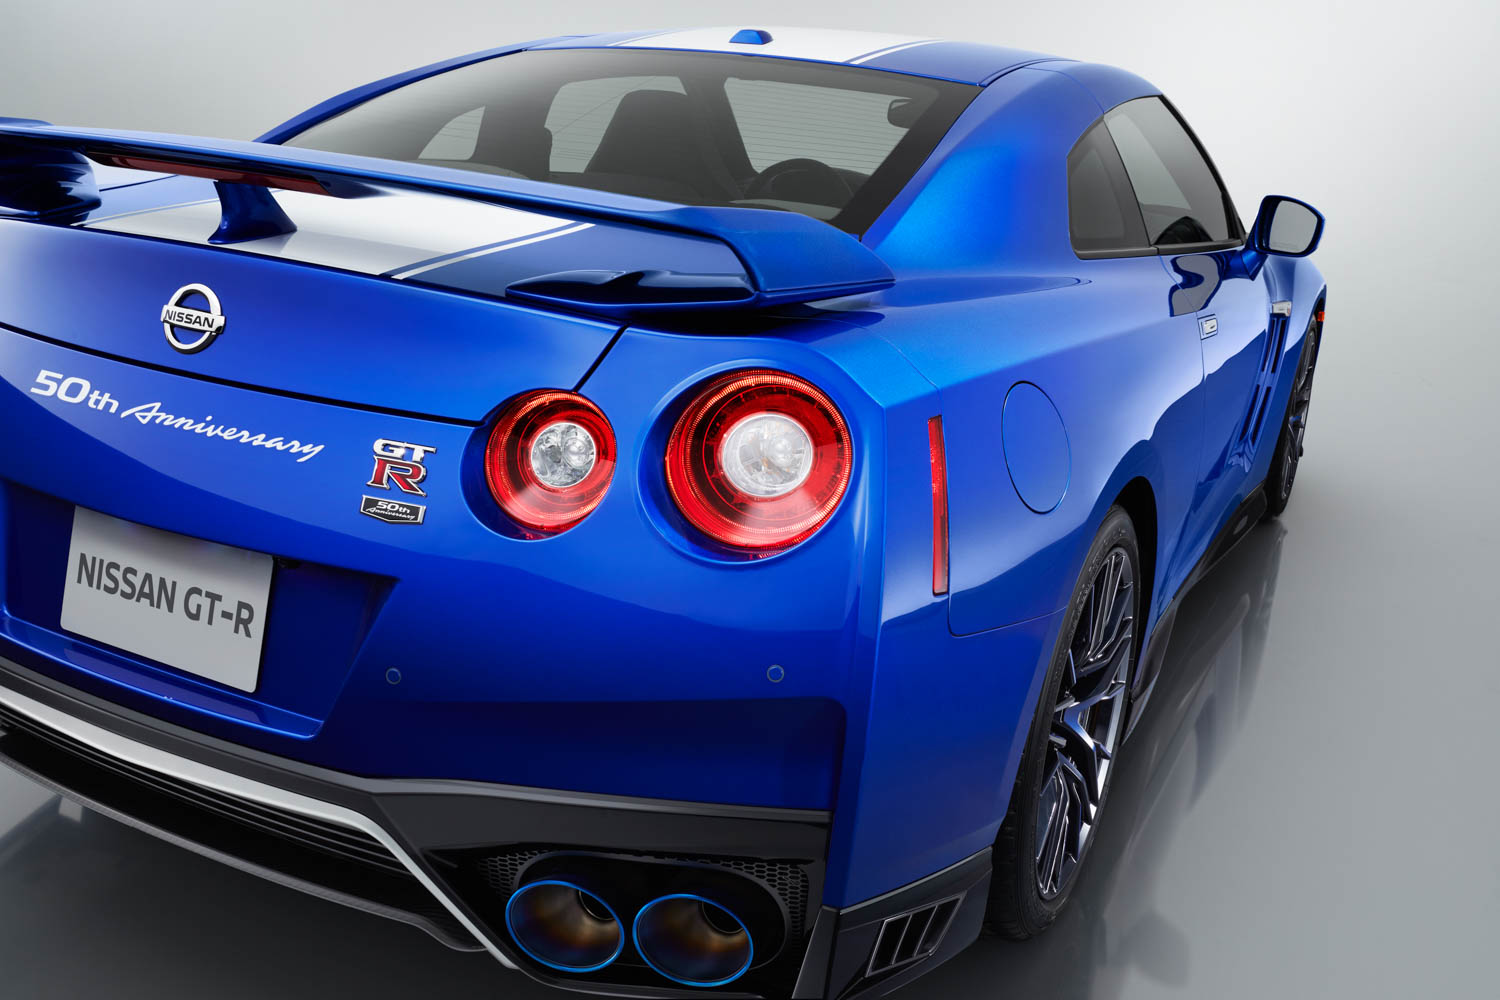 Nissan 50th Anniversary GT-R rear view